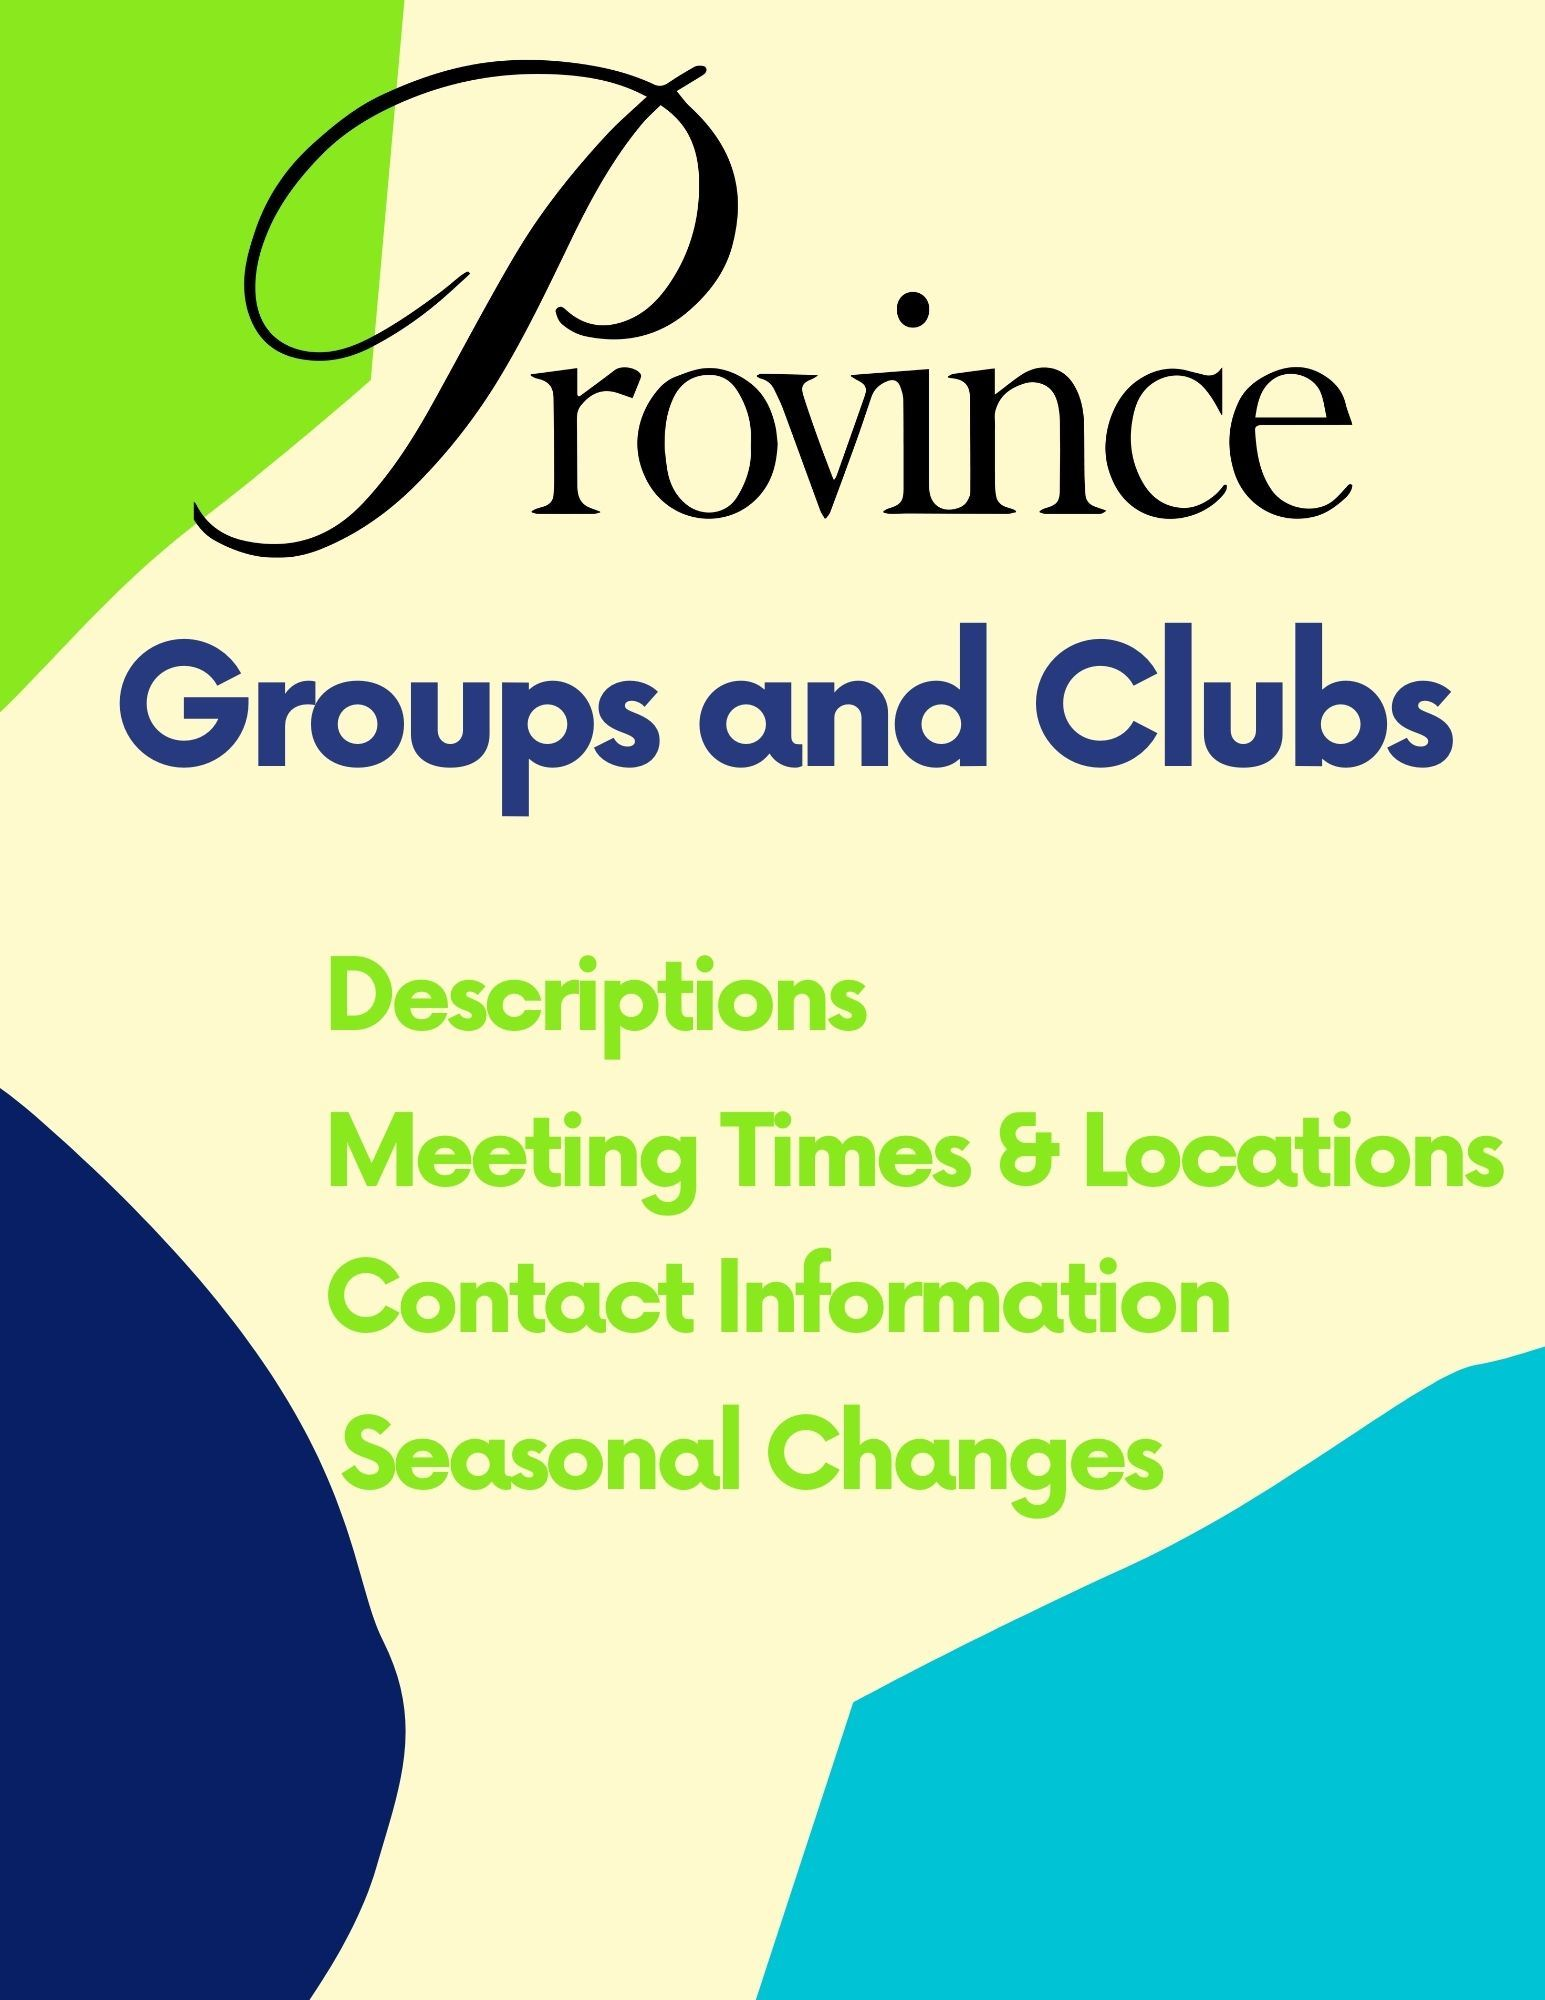 Groups and Clubs